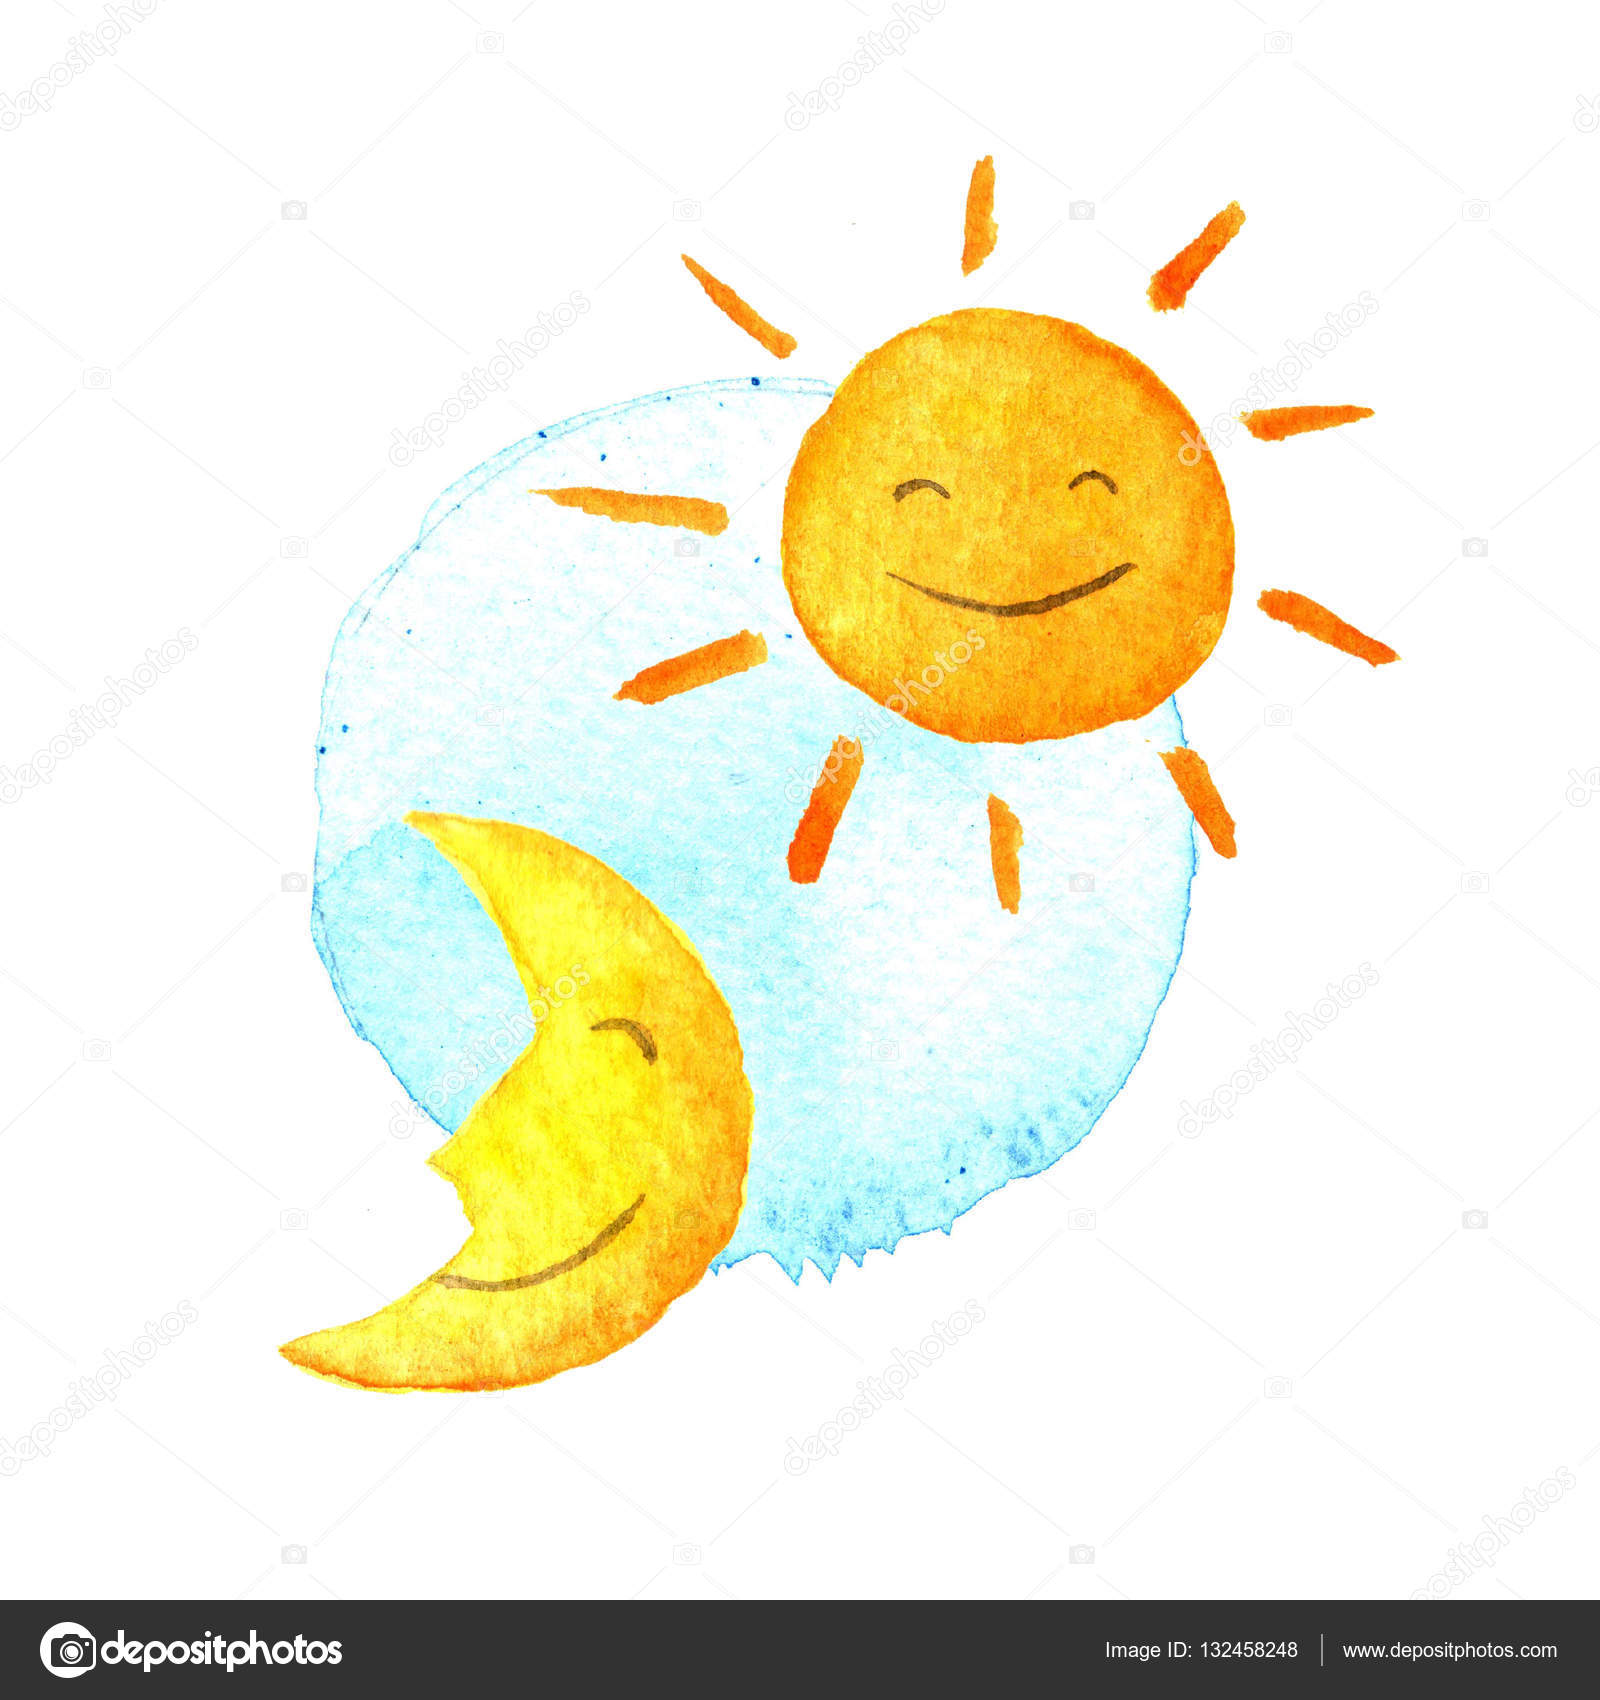 Day And Night Sun Moon Watercolor Icon Cute Smiling Half Hand